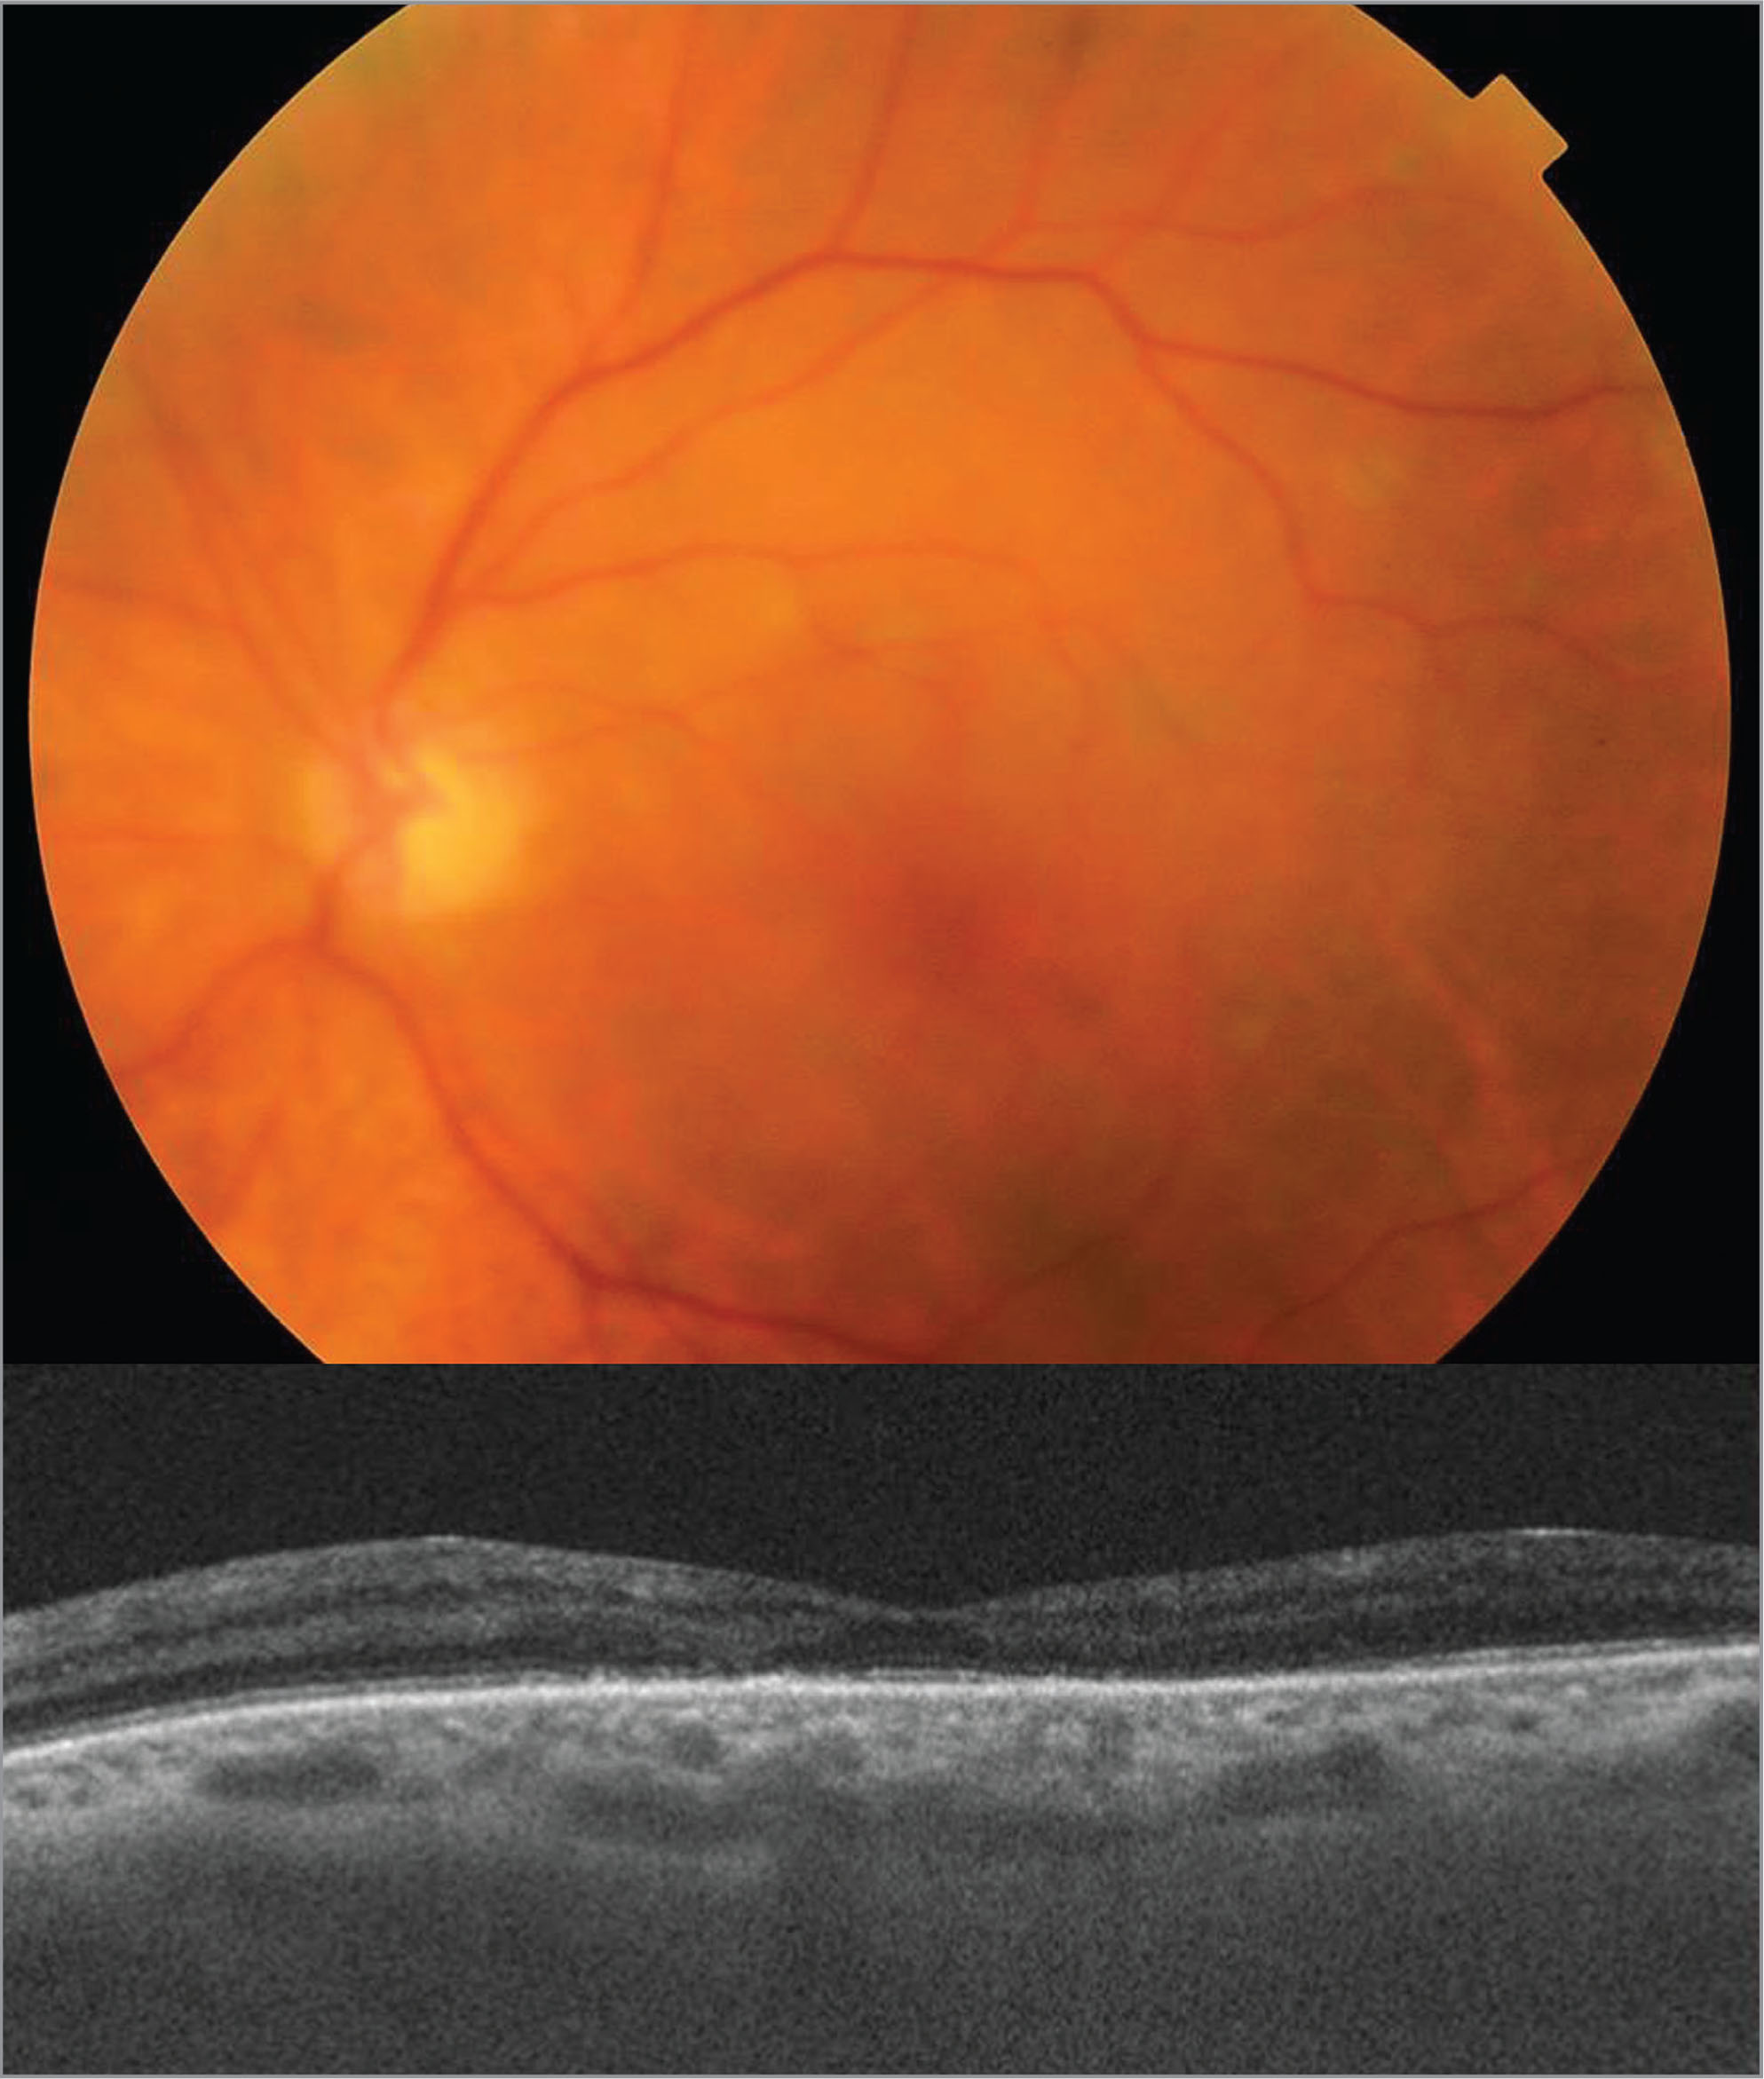 (A) Fundus photograph of the left eye 1 month after initial presentation shows resolution of retinal whitening. (B) Spectral-domain optical coherence tomography shows complete resolution of the hyperreflective lesions with residual diffuse thinning of the inner and outer plexiform retinal layers, as well as persistent alterations of the outer retina.